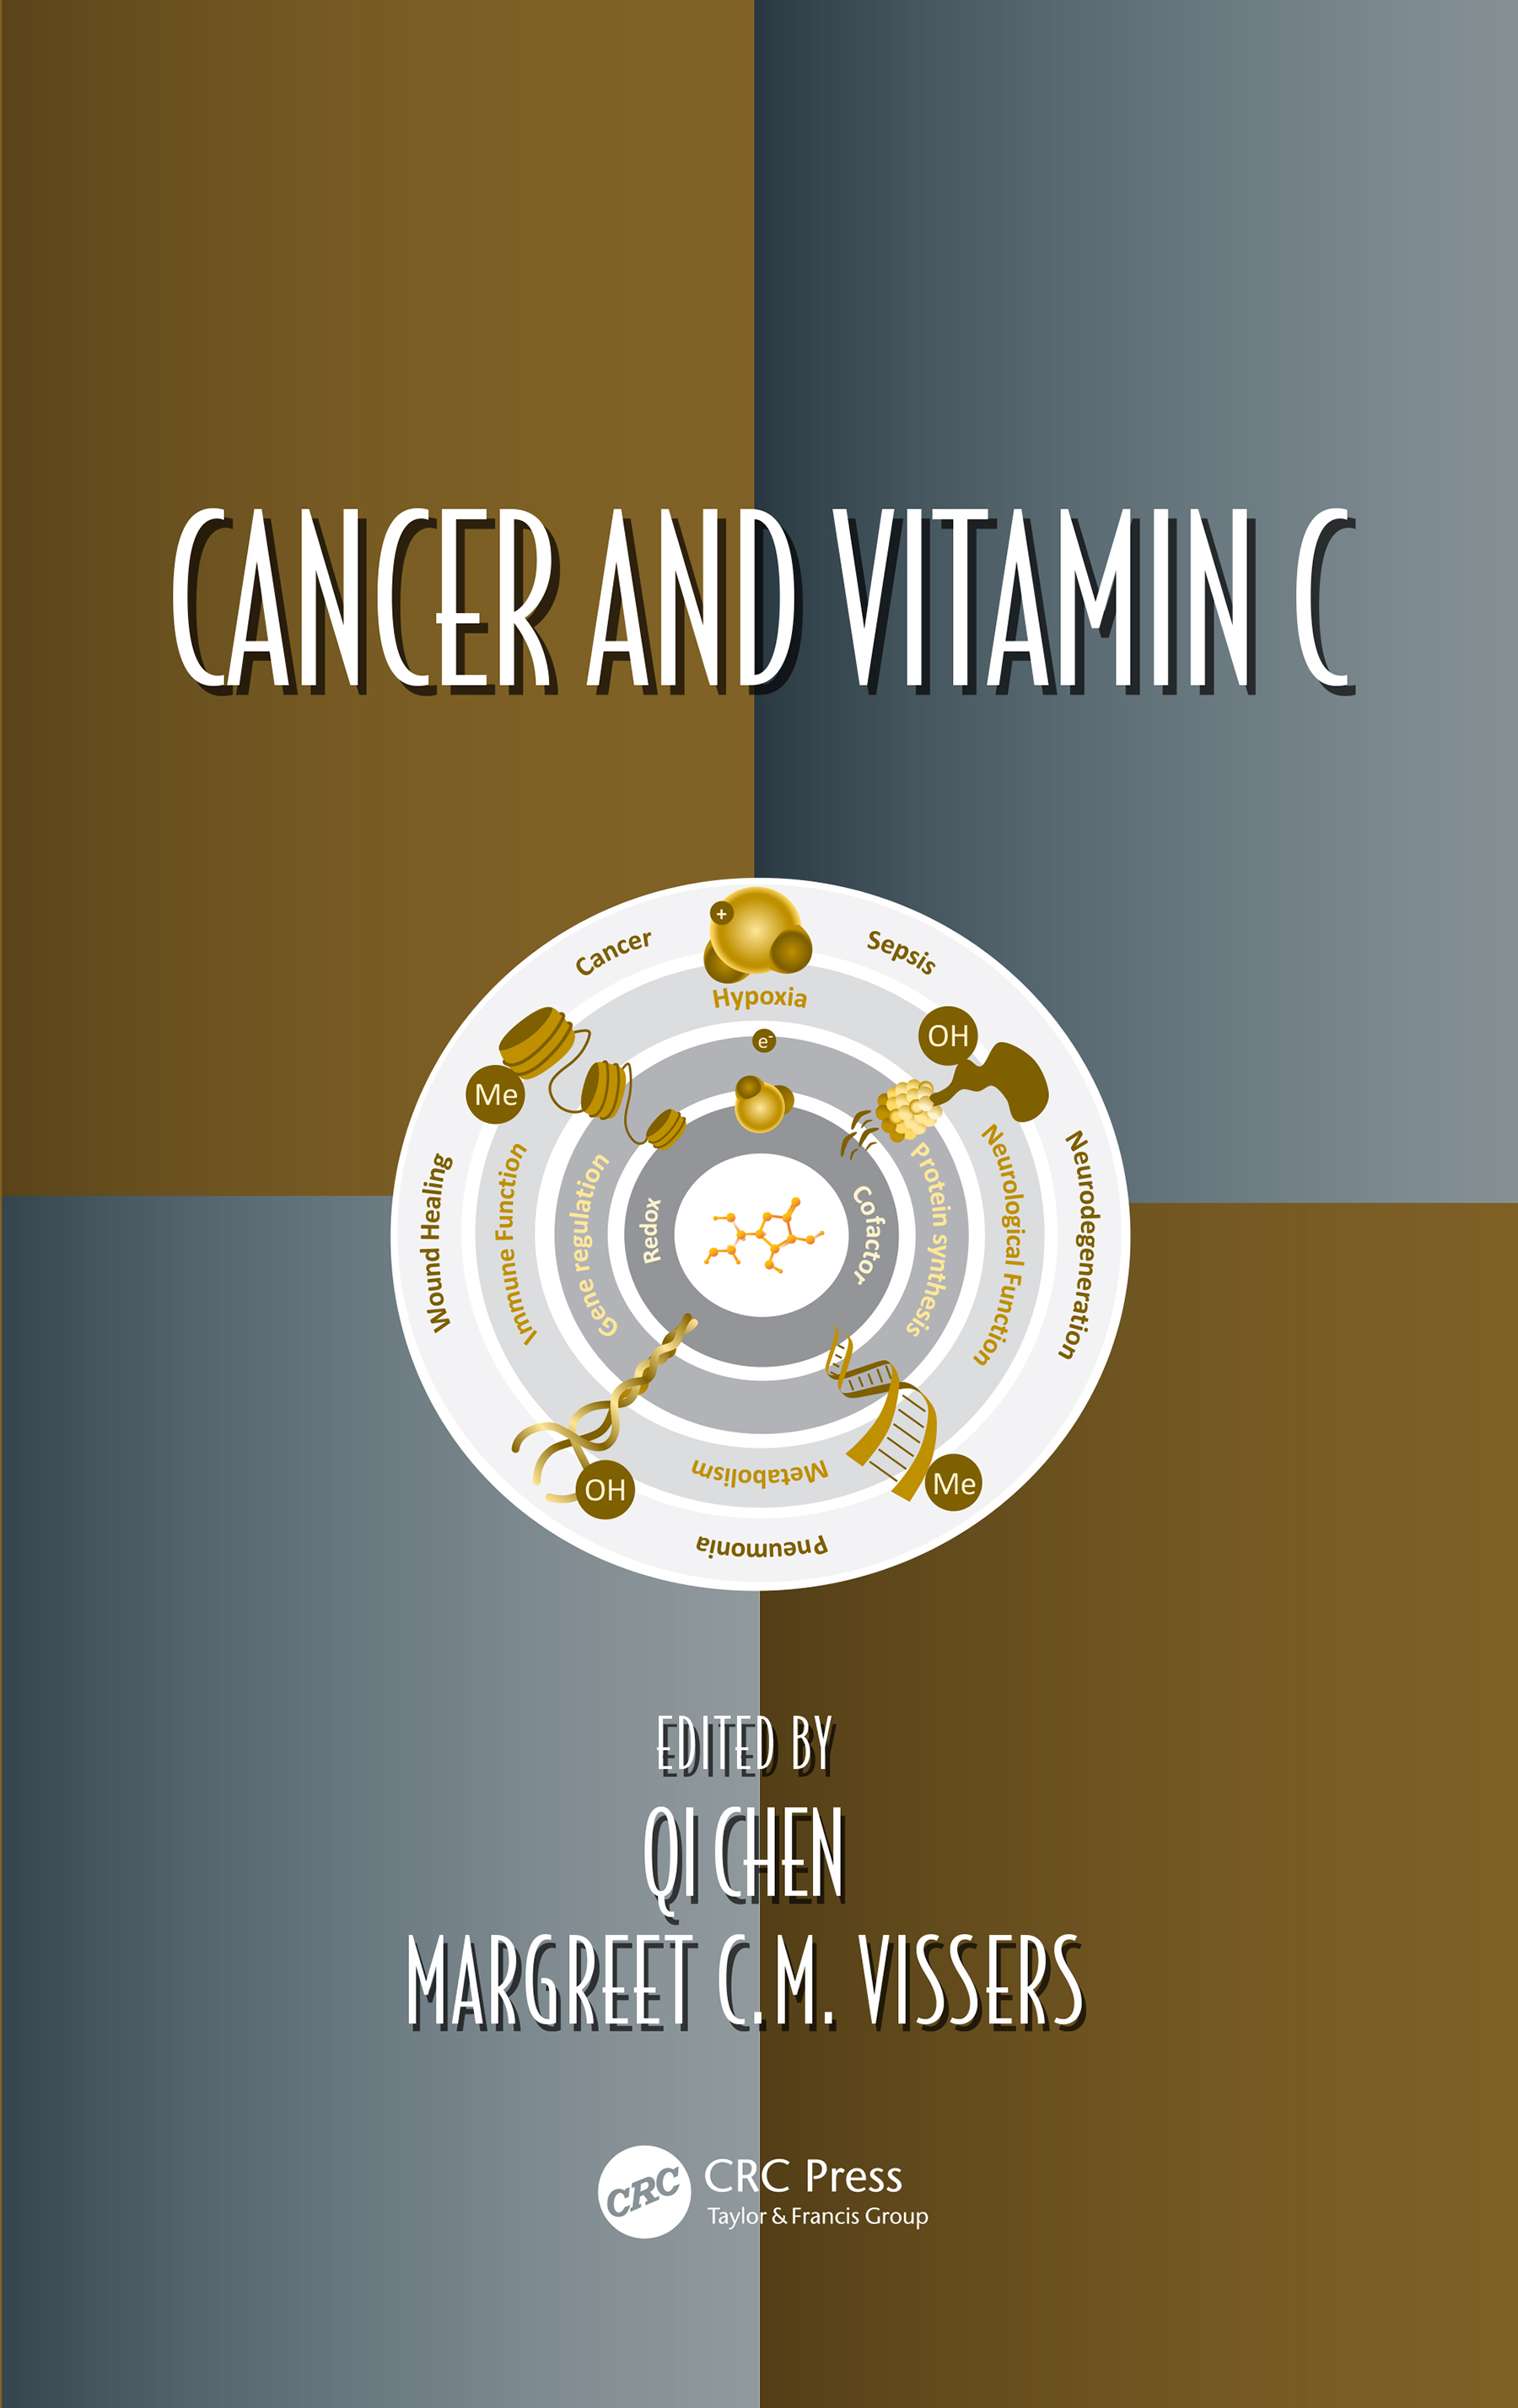 Cancer and Vitamin C book cover